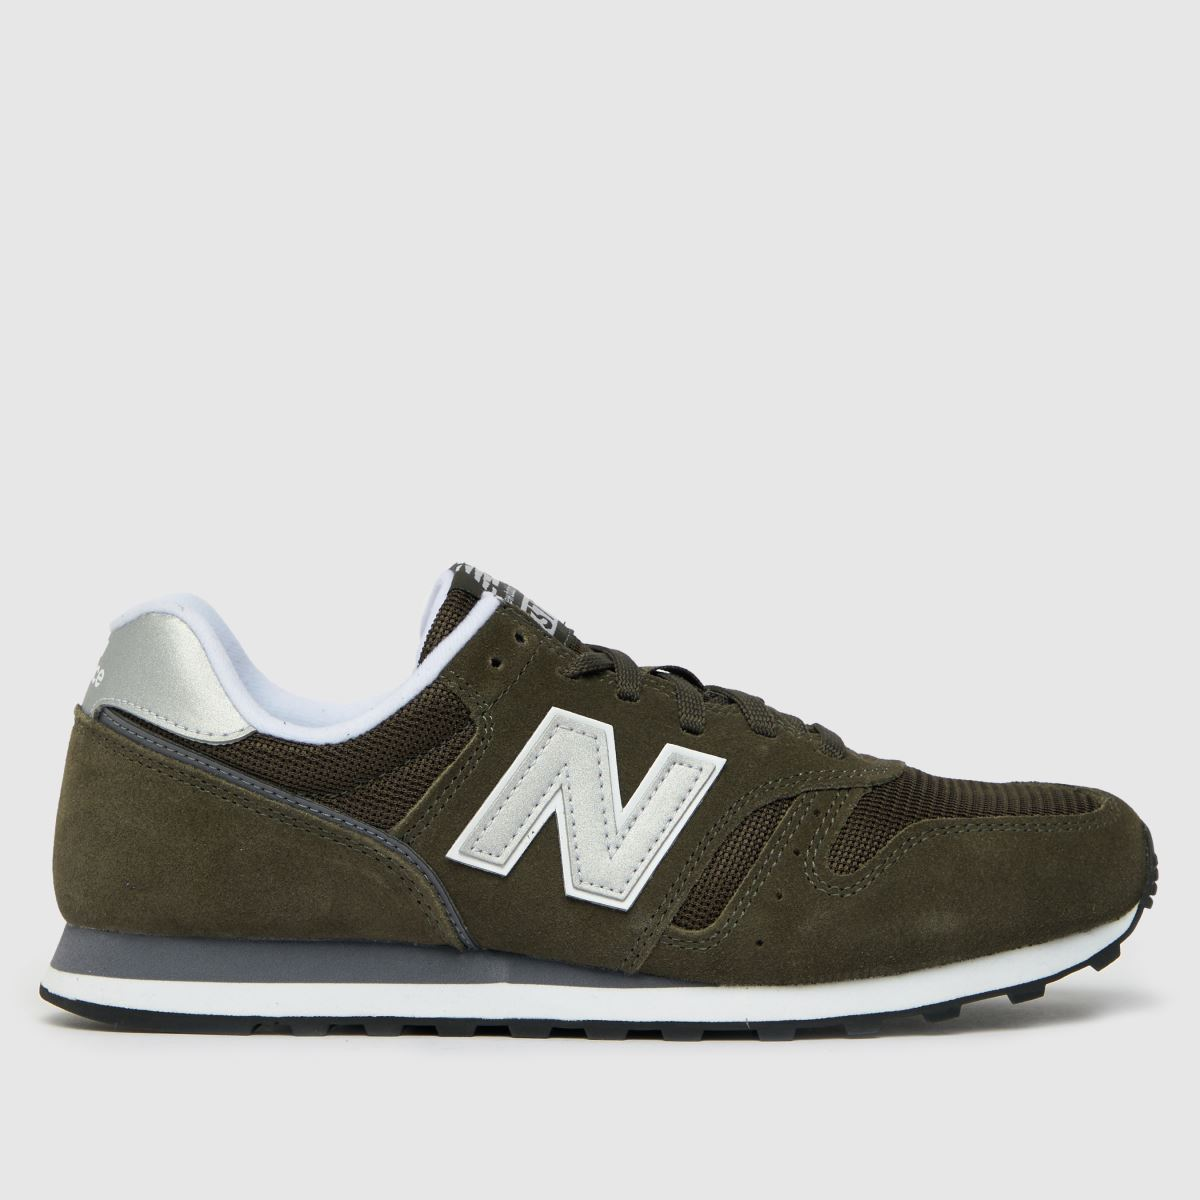 New Balance Brown Nb 373 Trainers